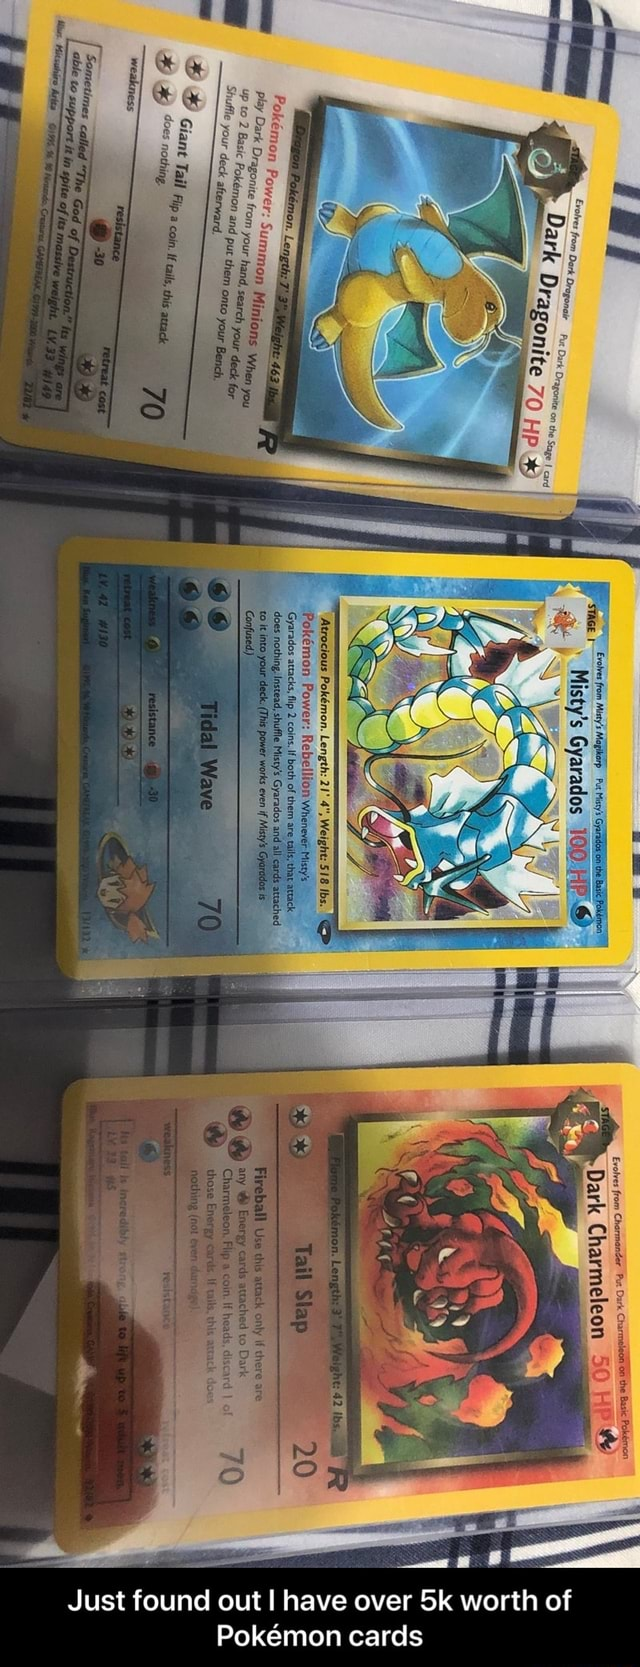 Your hand, Shufle deck your Pokmmon Summ, Dark Dragonite Power ark HP Dragonite Dragonite Wewe 100 HP Evolves from Charmander Put Dark CharmeleSi6a the the Basic Pokemon Dark Charmeleon 50 HE 20 Just found out have over worth of Pokemon cards Just found out I have over 5k worth of Pokemon cards meme